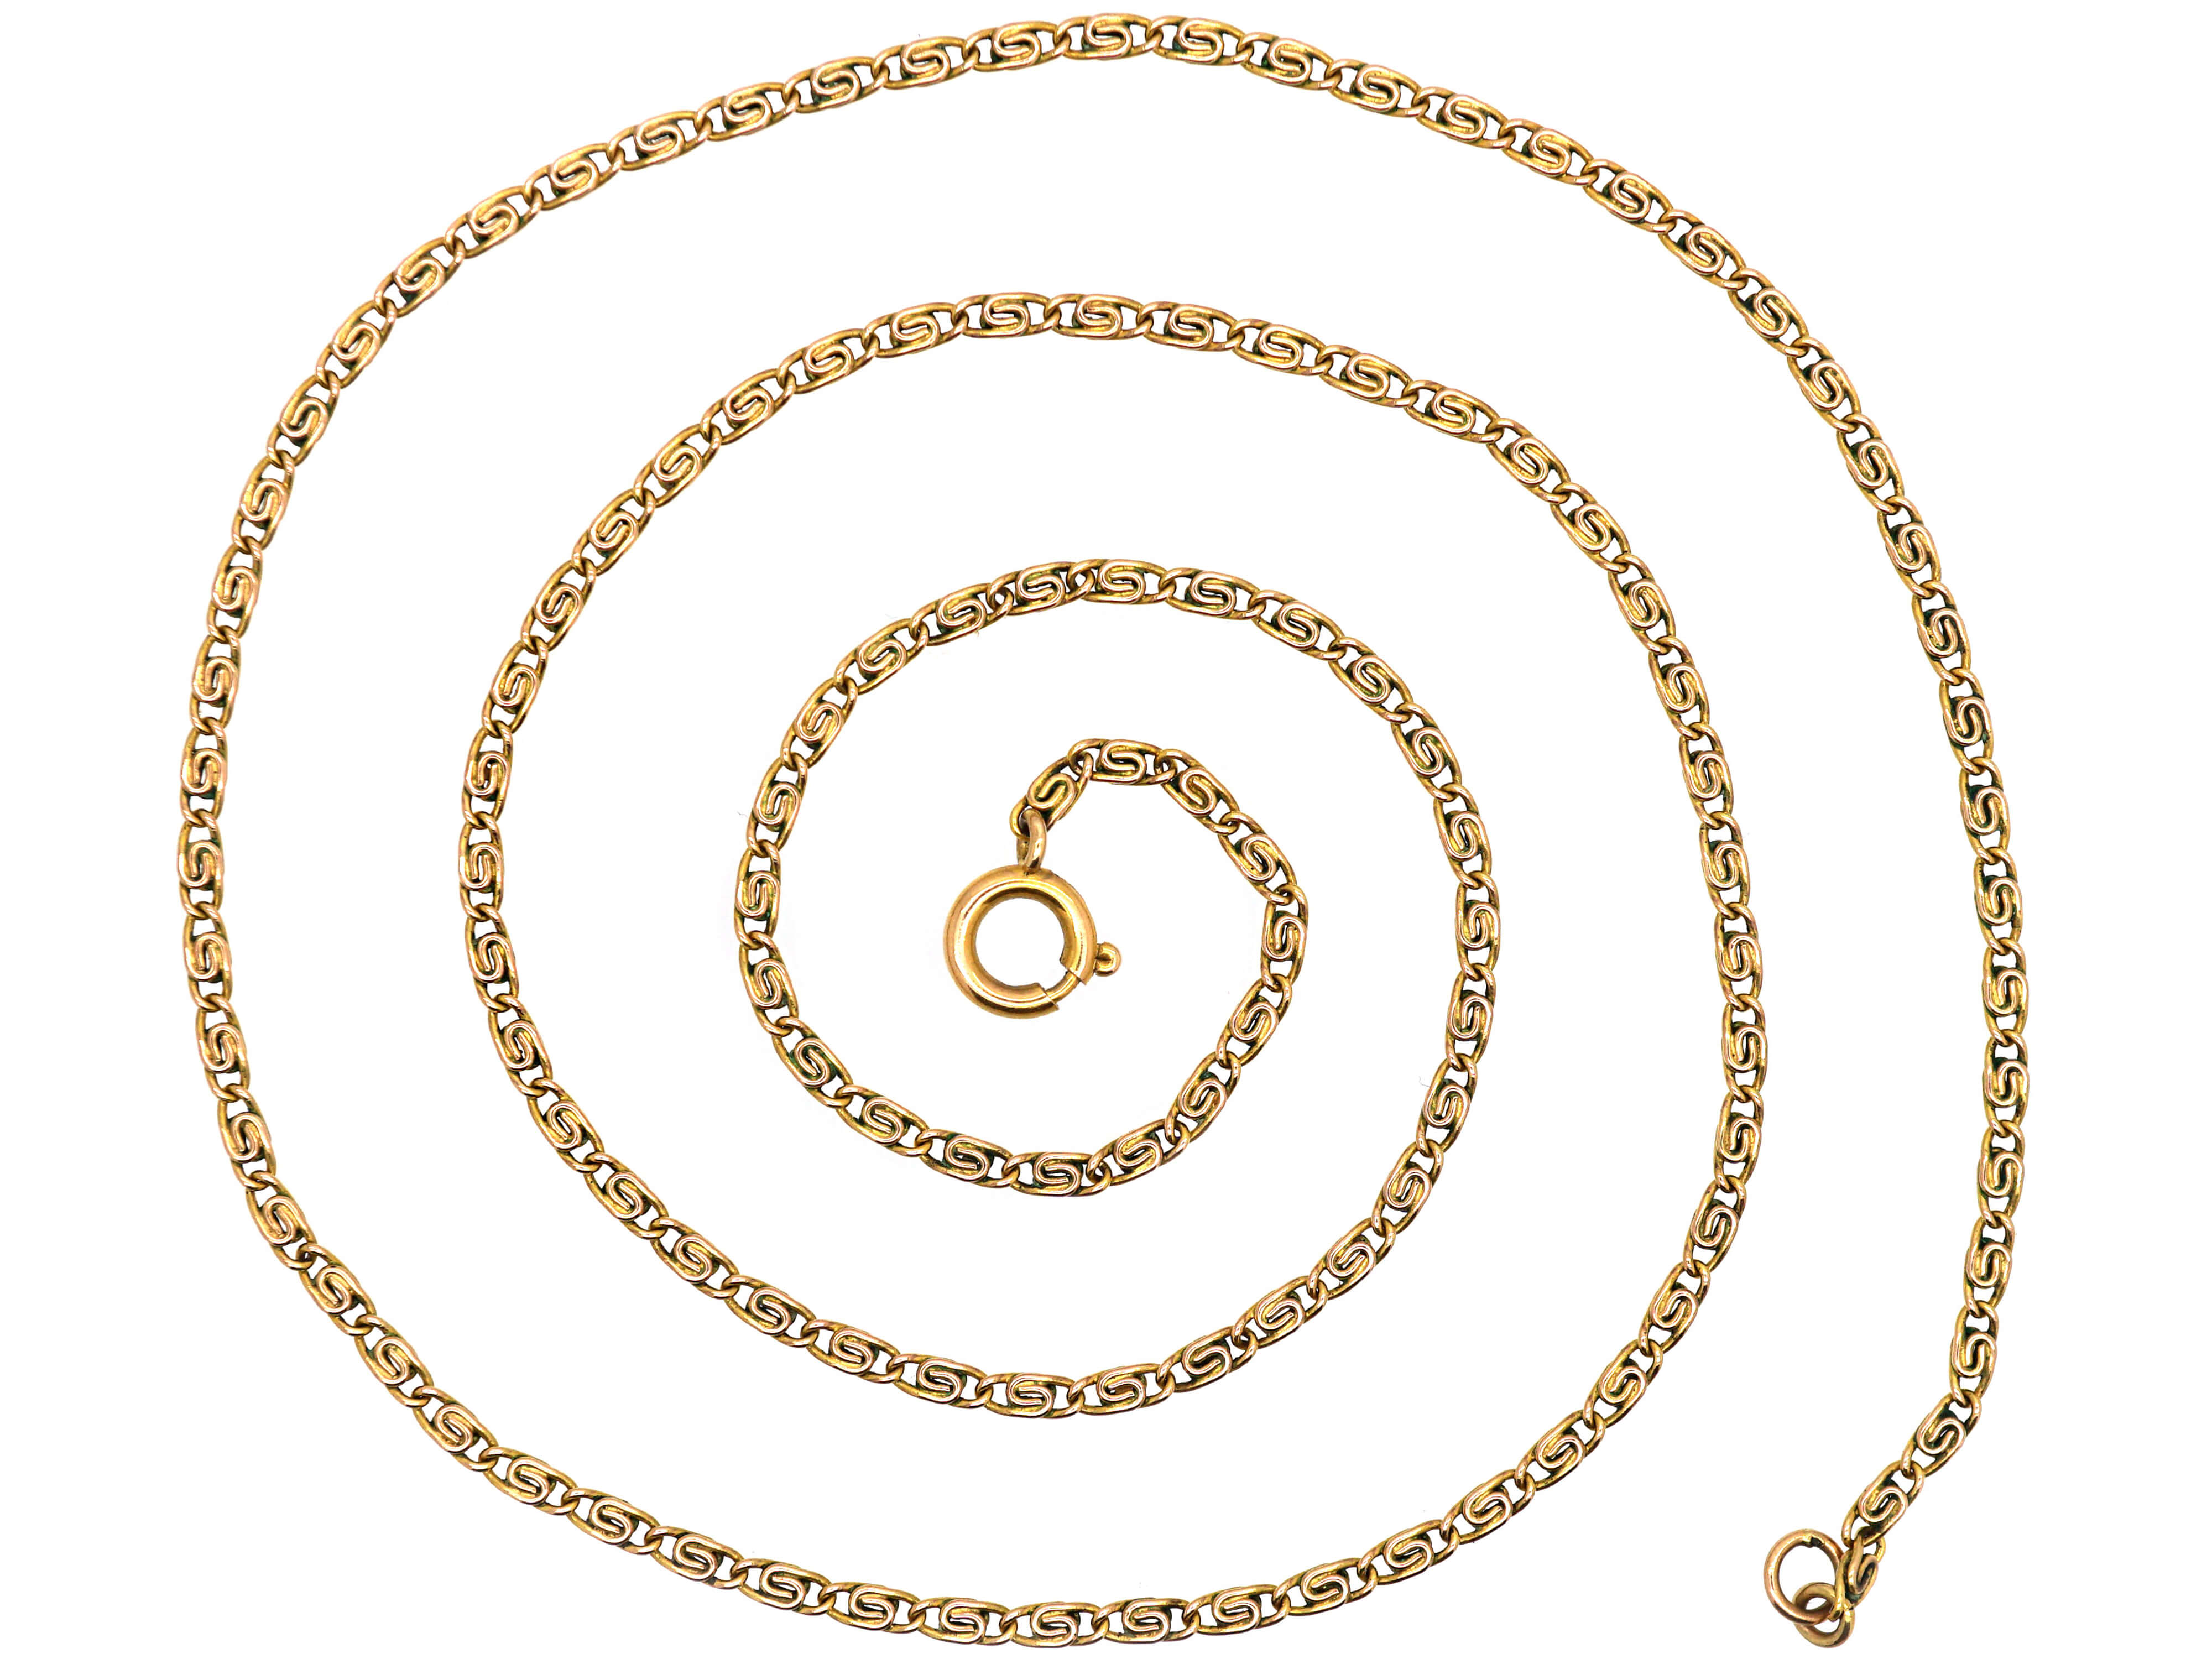 Edwardian 9ct Gold Flat Coiled Link Chain